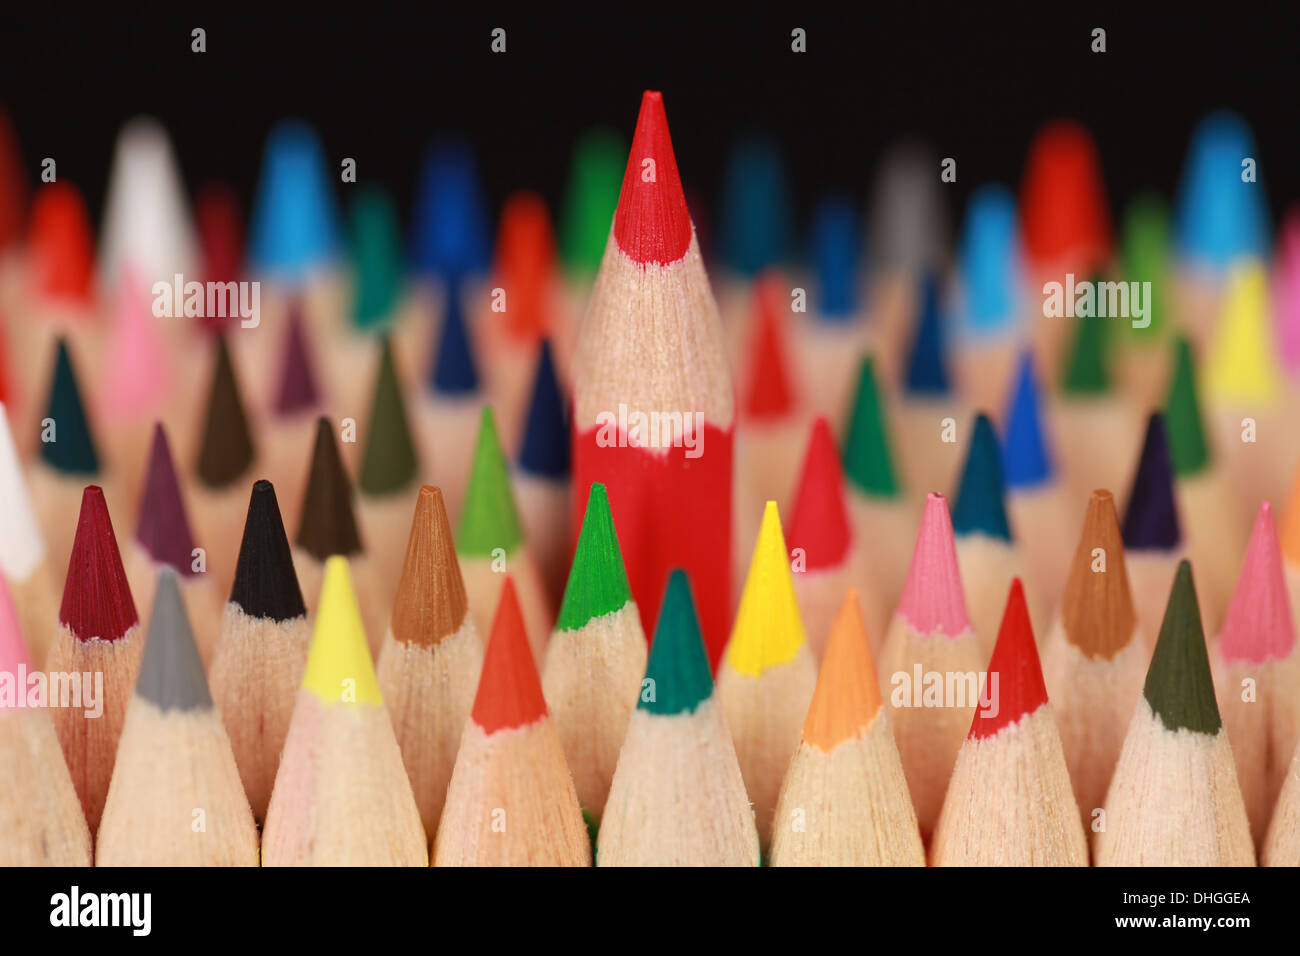 Concept picture red pencil standing out from the crowd - Stock Image